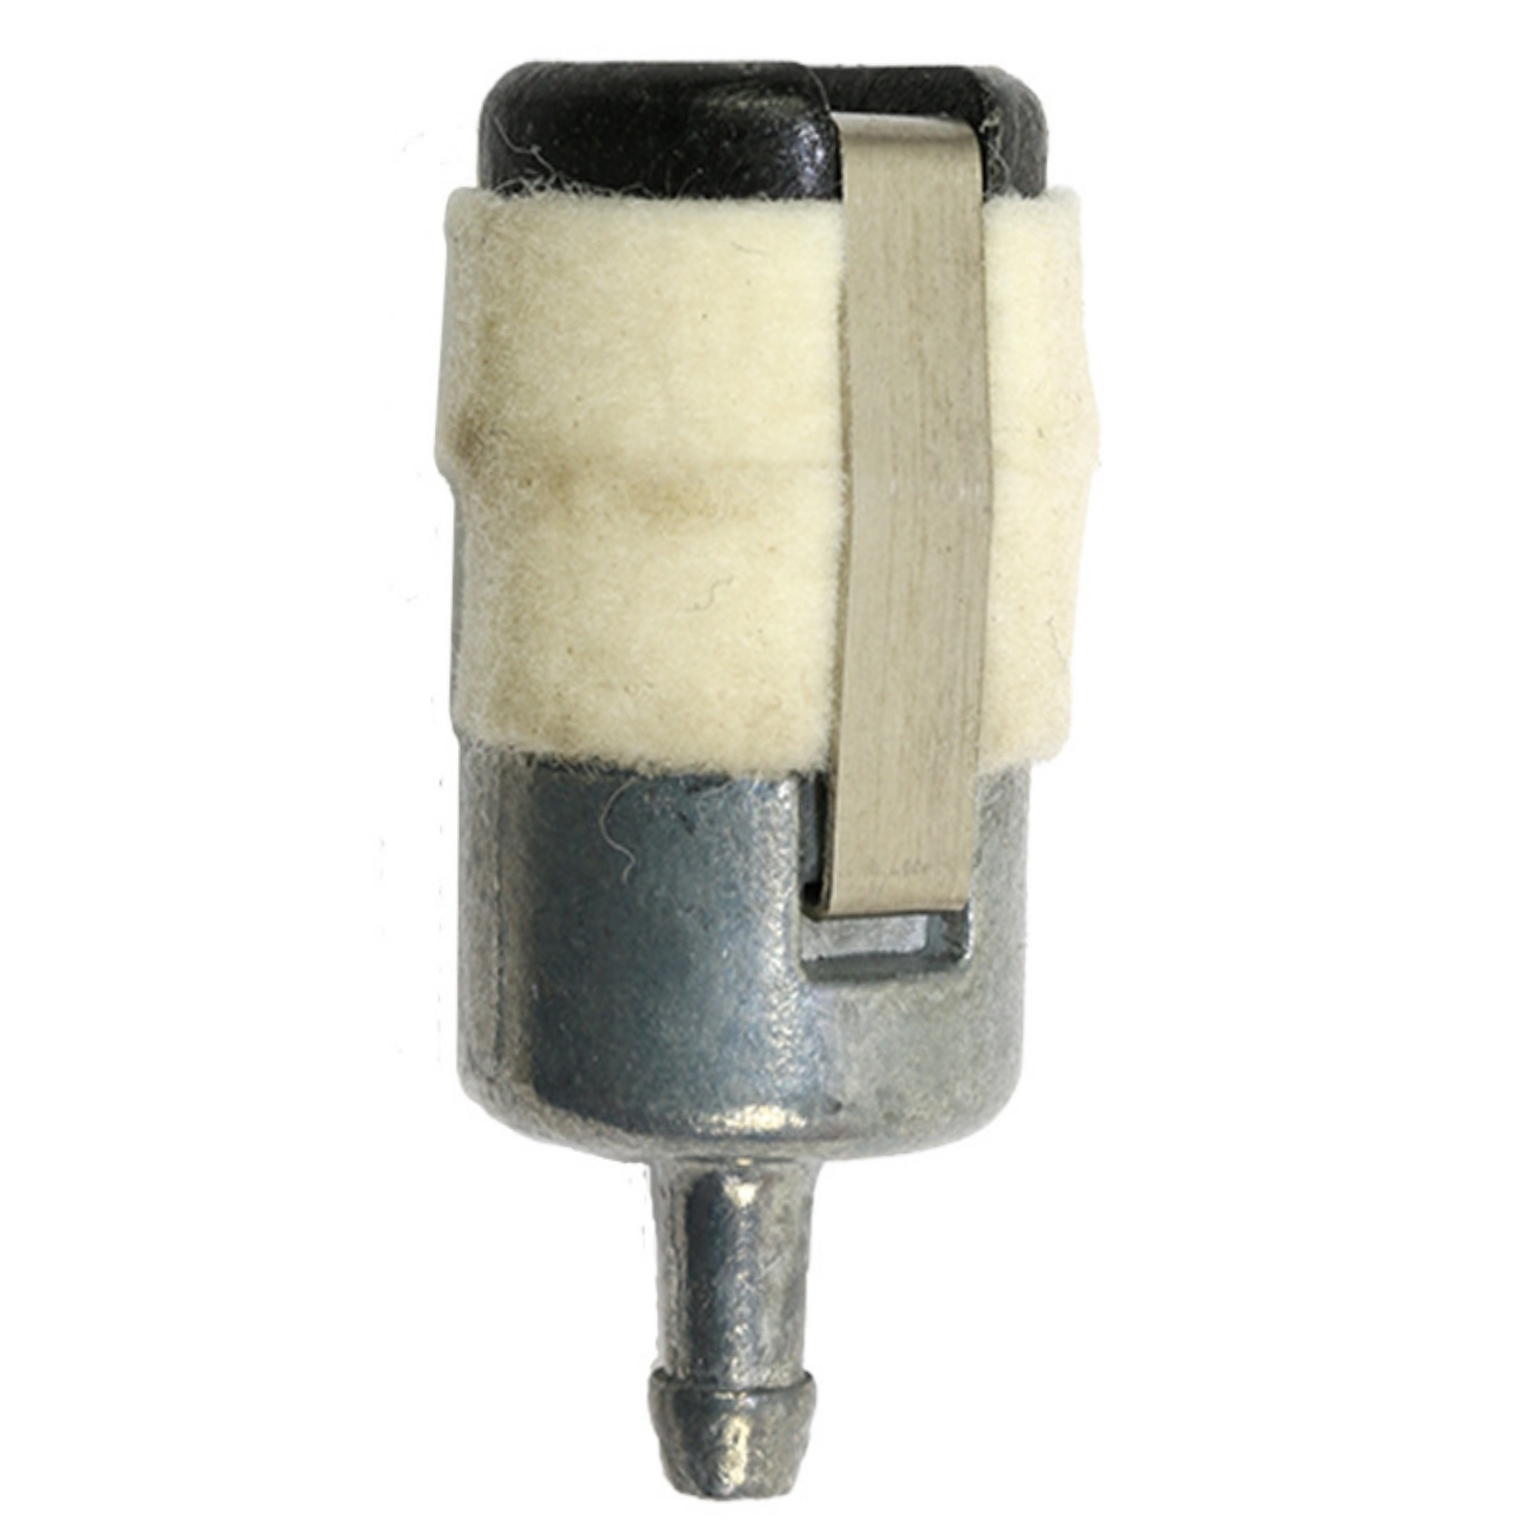 Fuel Filter Replacement For Mtm 82sx 82cc Chainsaw